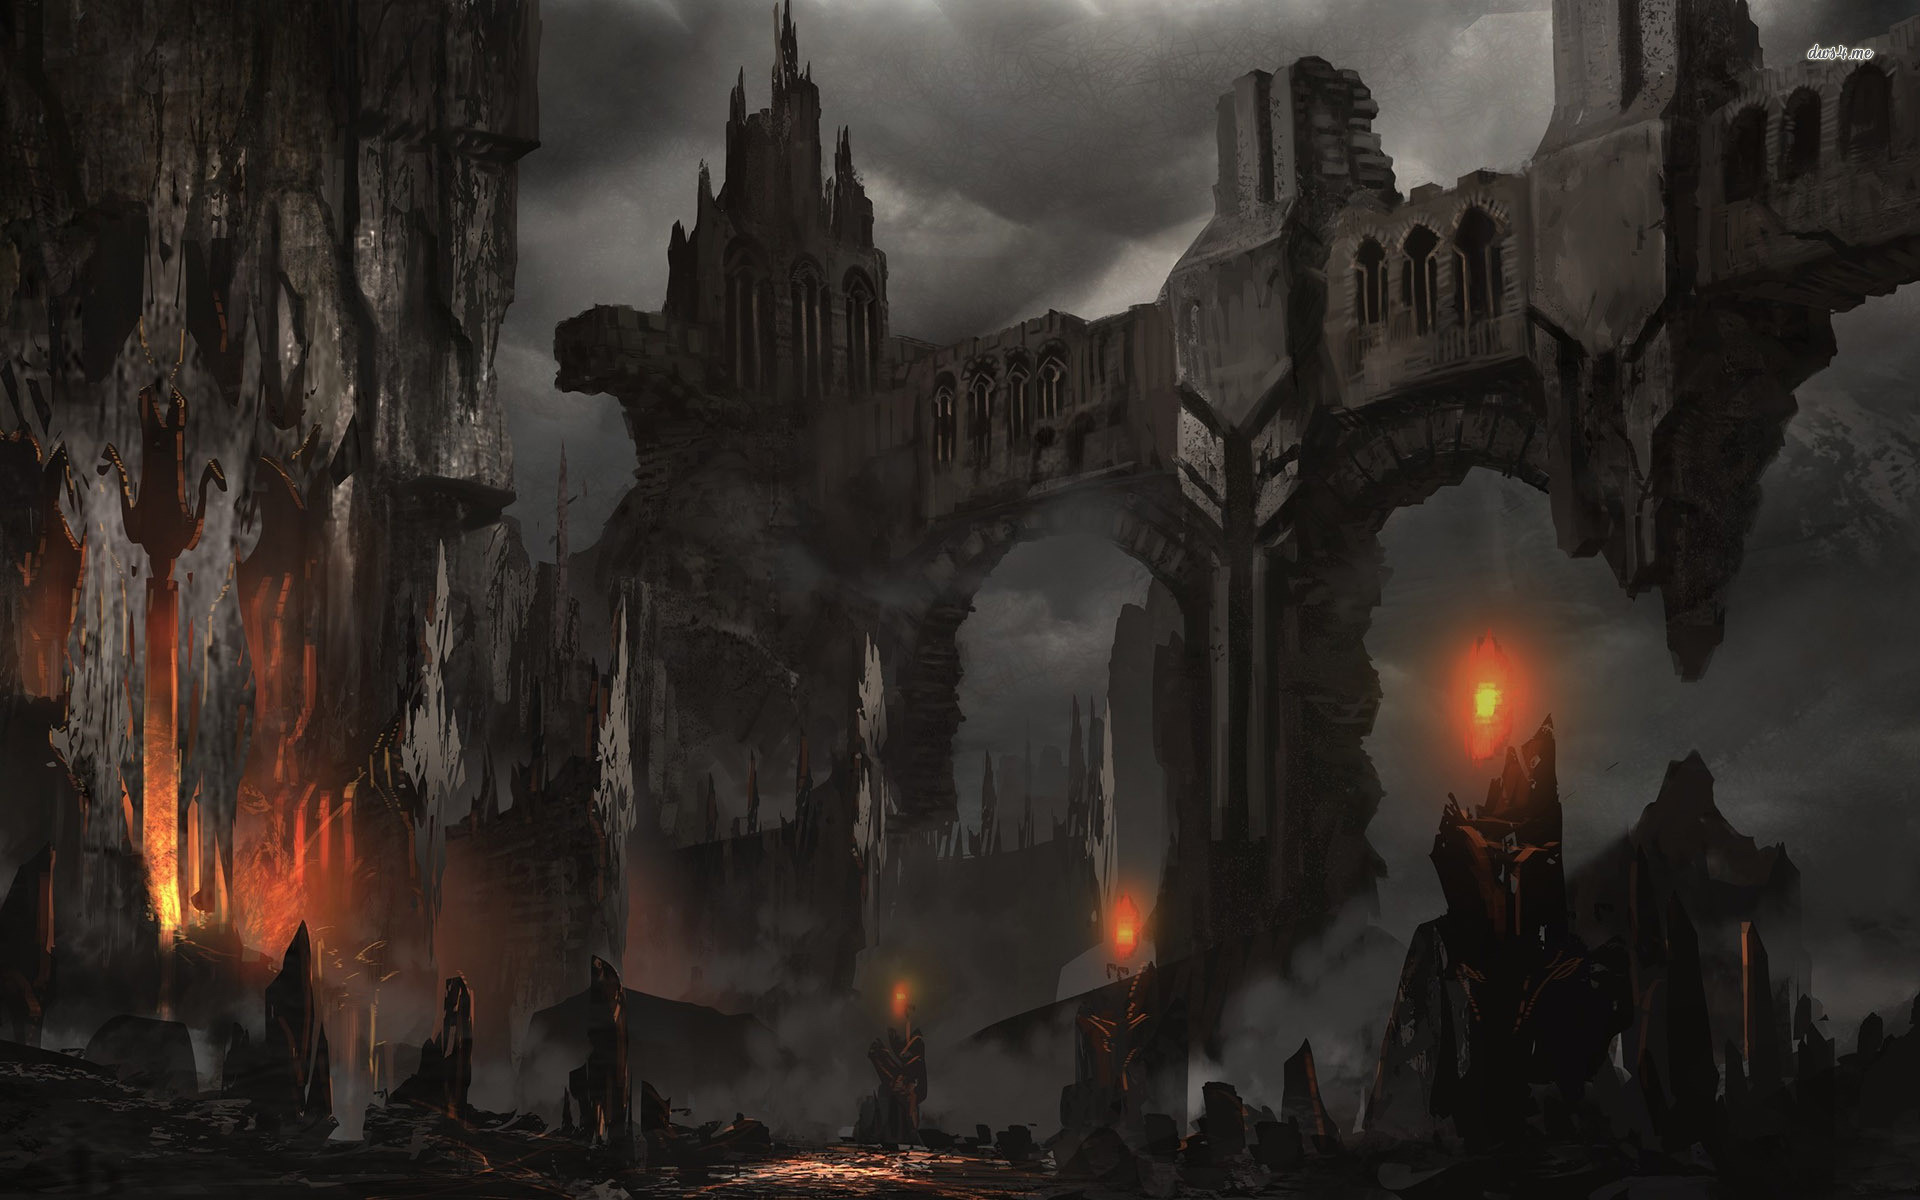 Dual Screen Hd Fantasy Wallpapers Get Your Fix Here: Medieval Castle Wallpaper (58+ Images